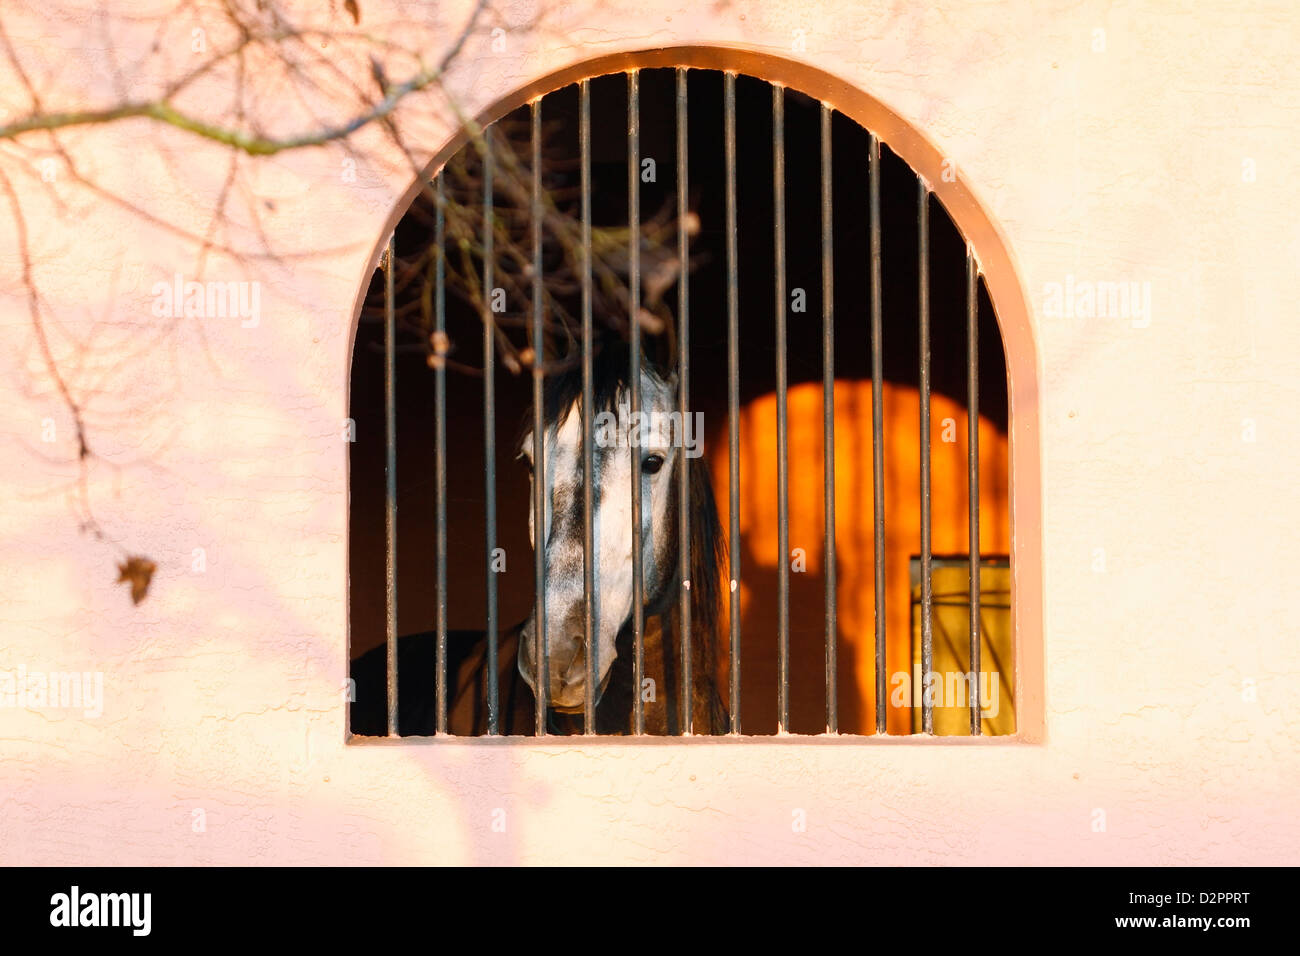 Gray Lusitano horse looks out stall window with bars as sun rises on a winter morning. Stock Photo